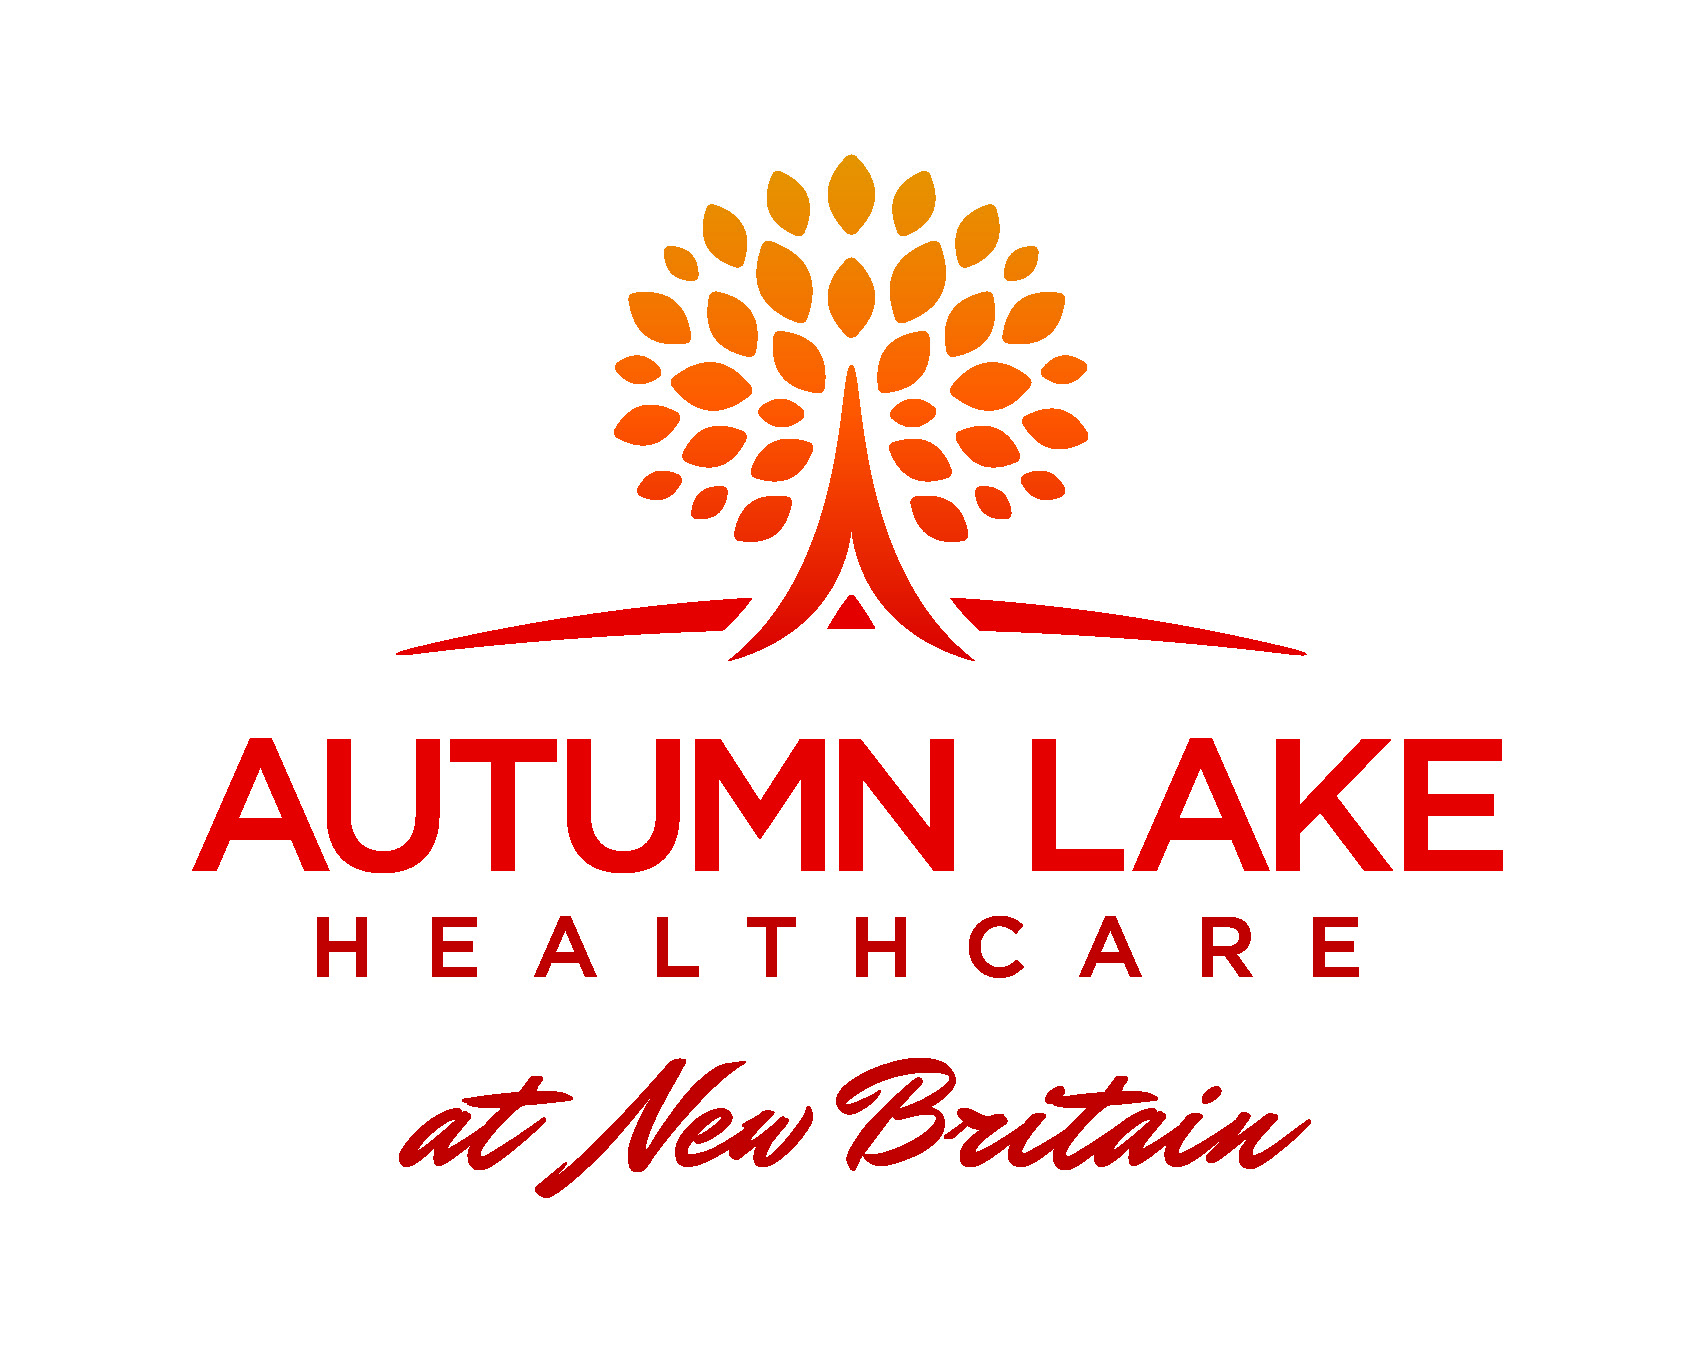 9.3 Autumn Lake Healthcare at New Britain